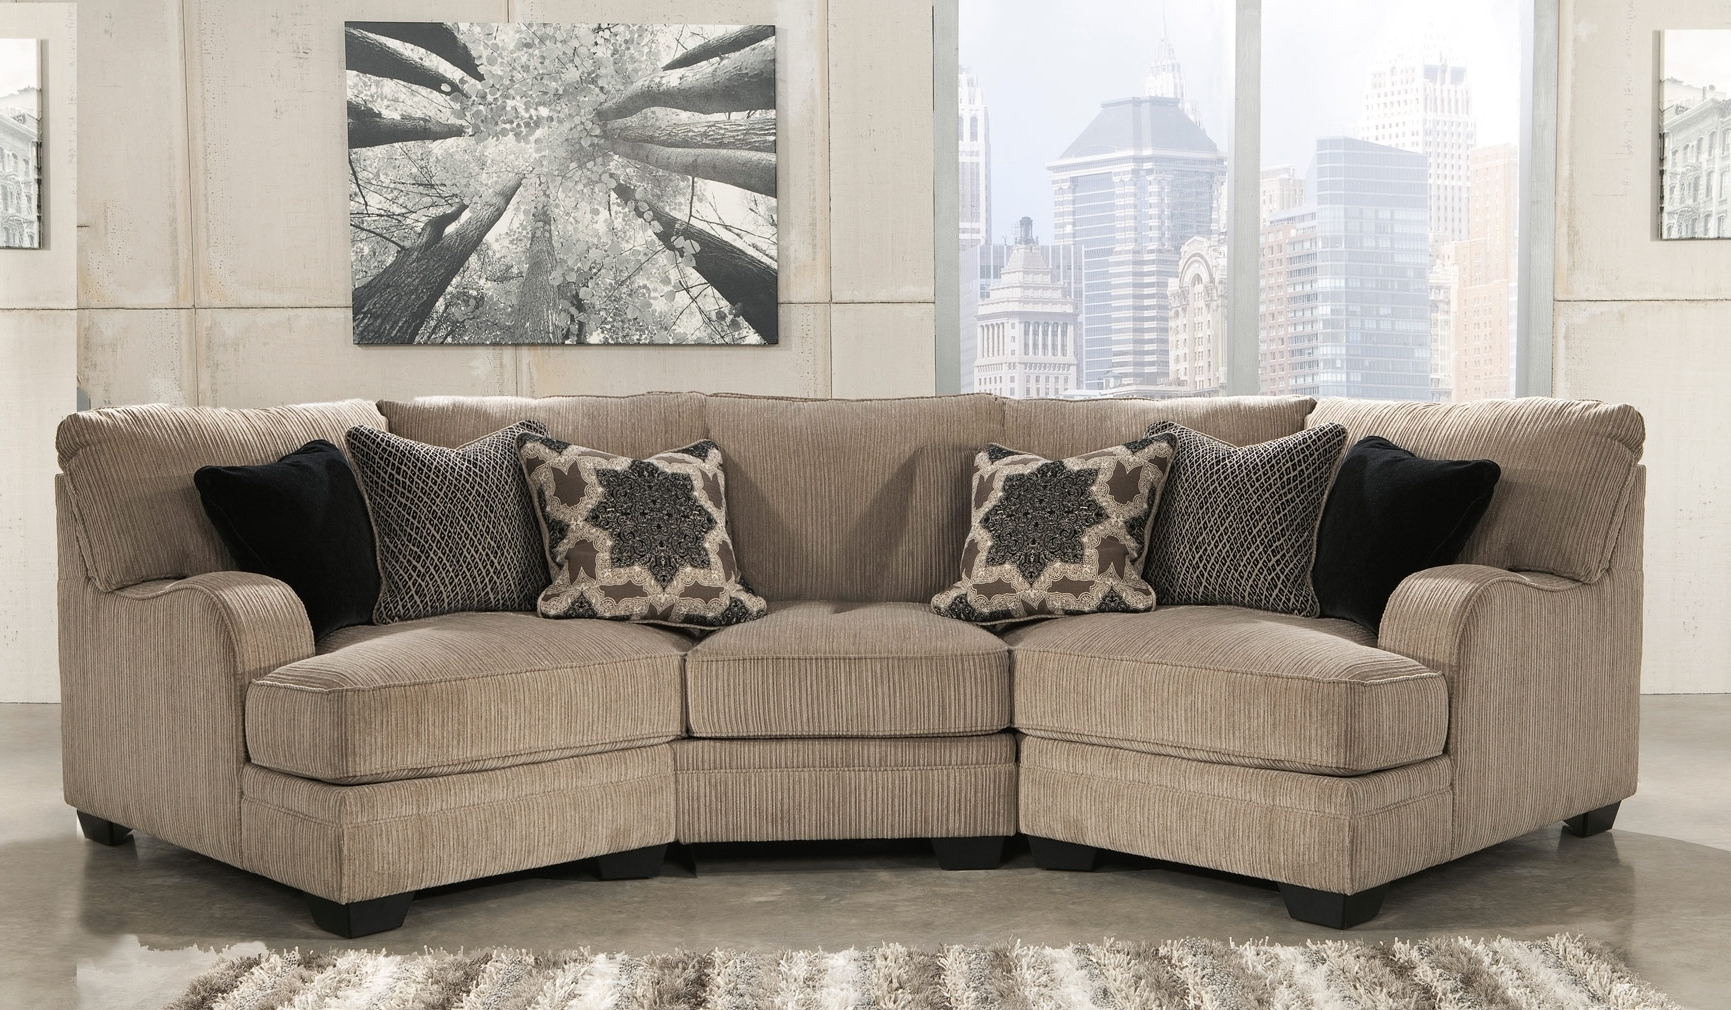 Cuddler Sectional Sofas Inside Fashionable Small Sectional Sofa With Cuddler (View 7 of 20)